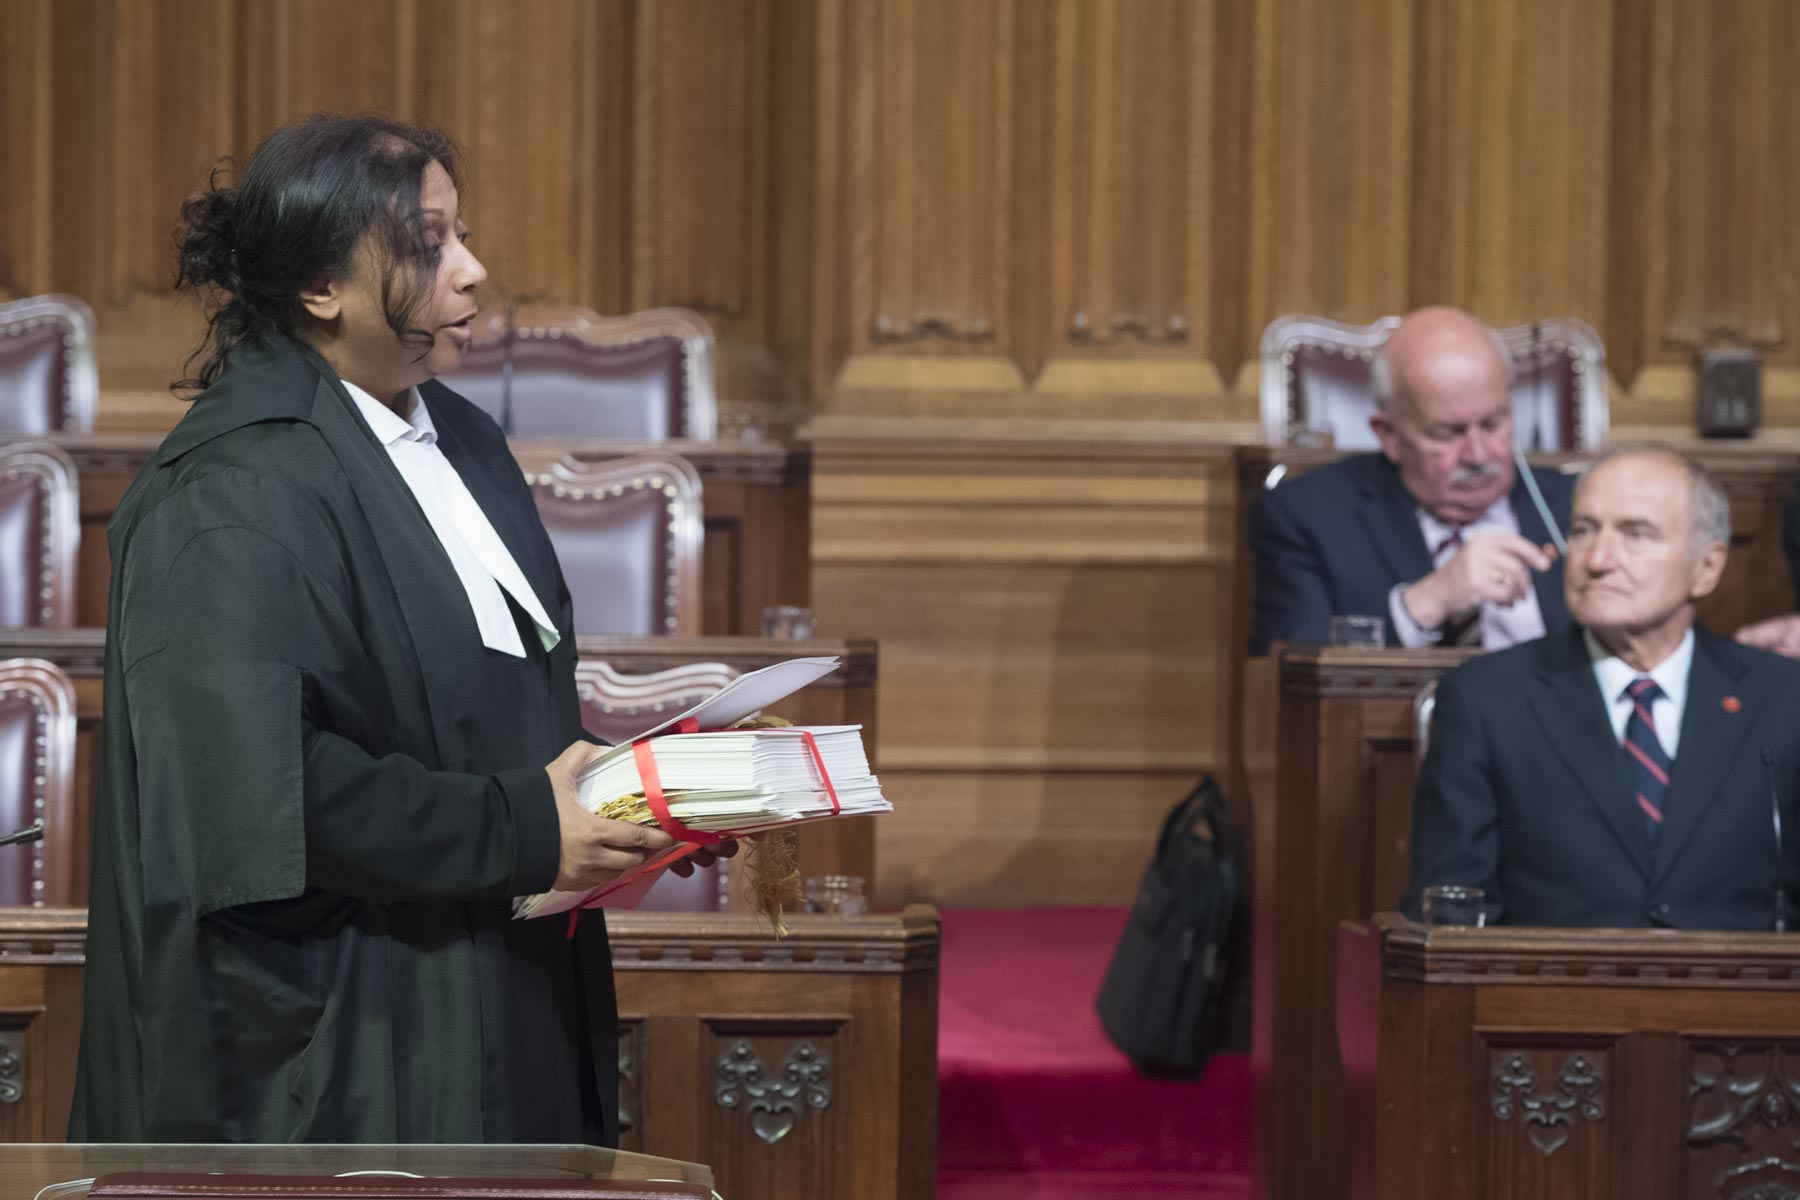 The bills were read aloud before being officially granted by the Governor General.